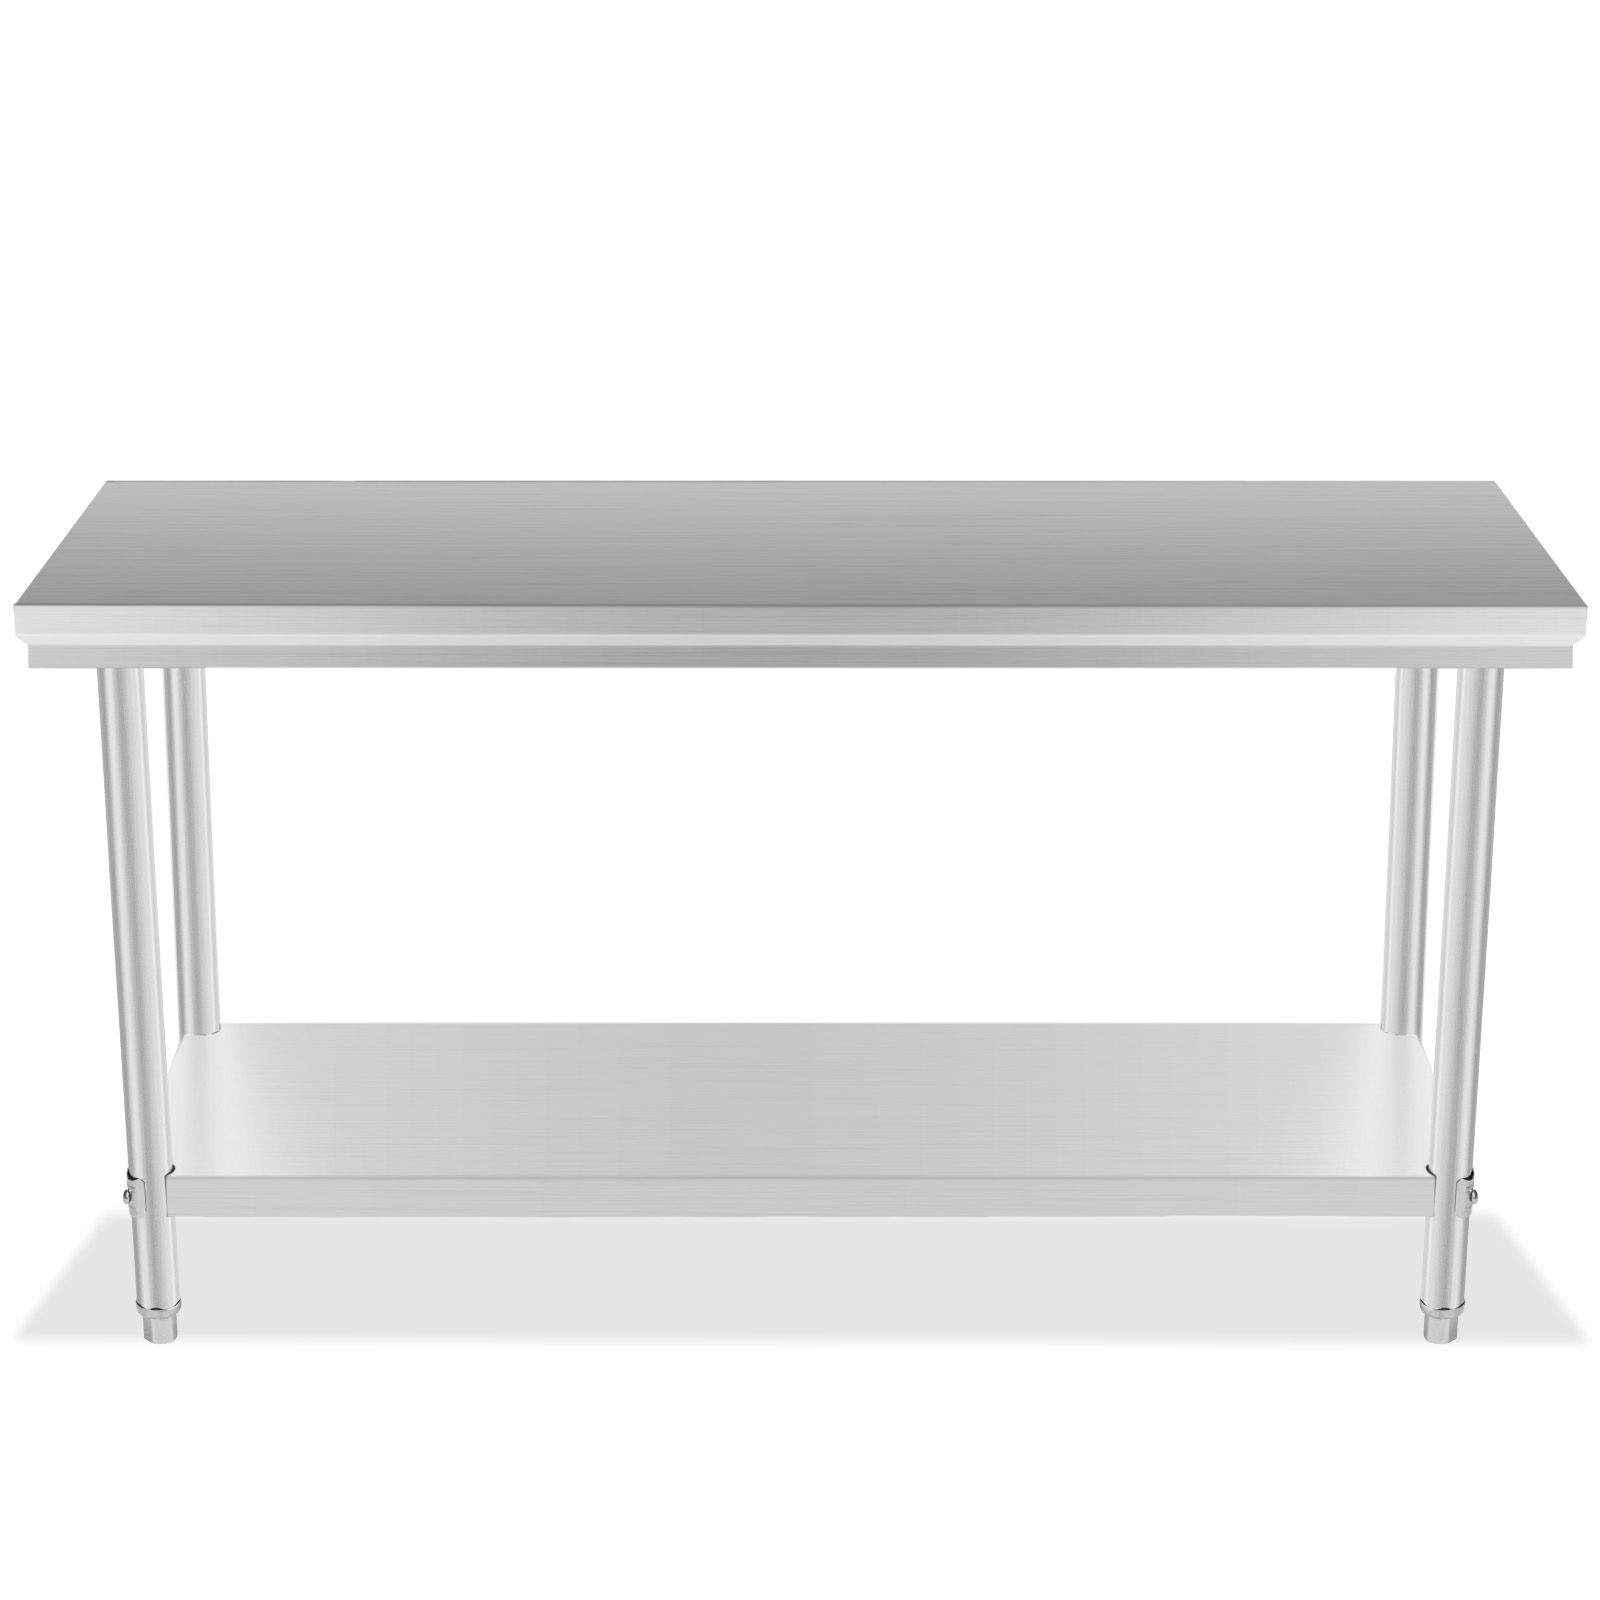 Restaurant stainless steel kitchen work prep table nsf chef shelf com - Top With Prep Tables For Kitchen